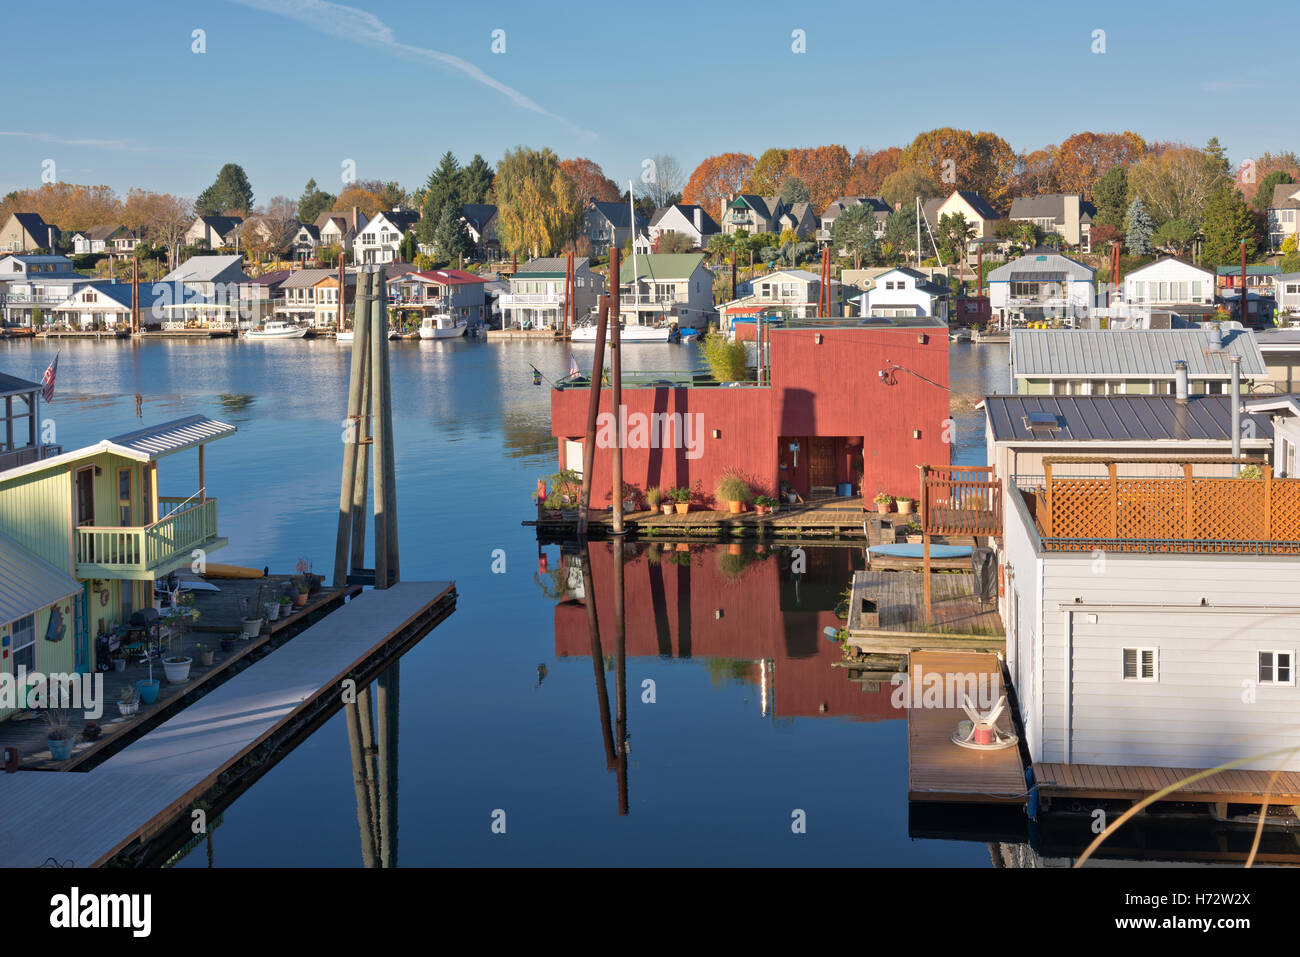 Floating homes and docked boats in Portland Oregon. - Stock Image